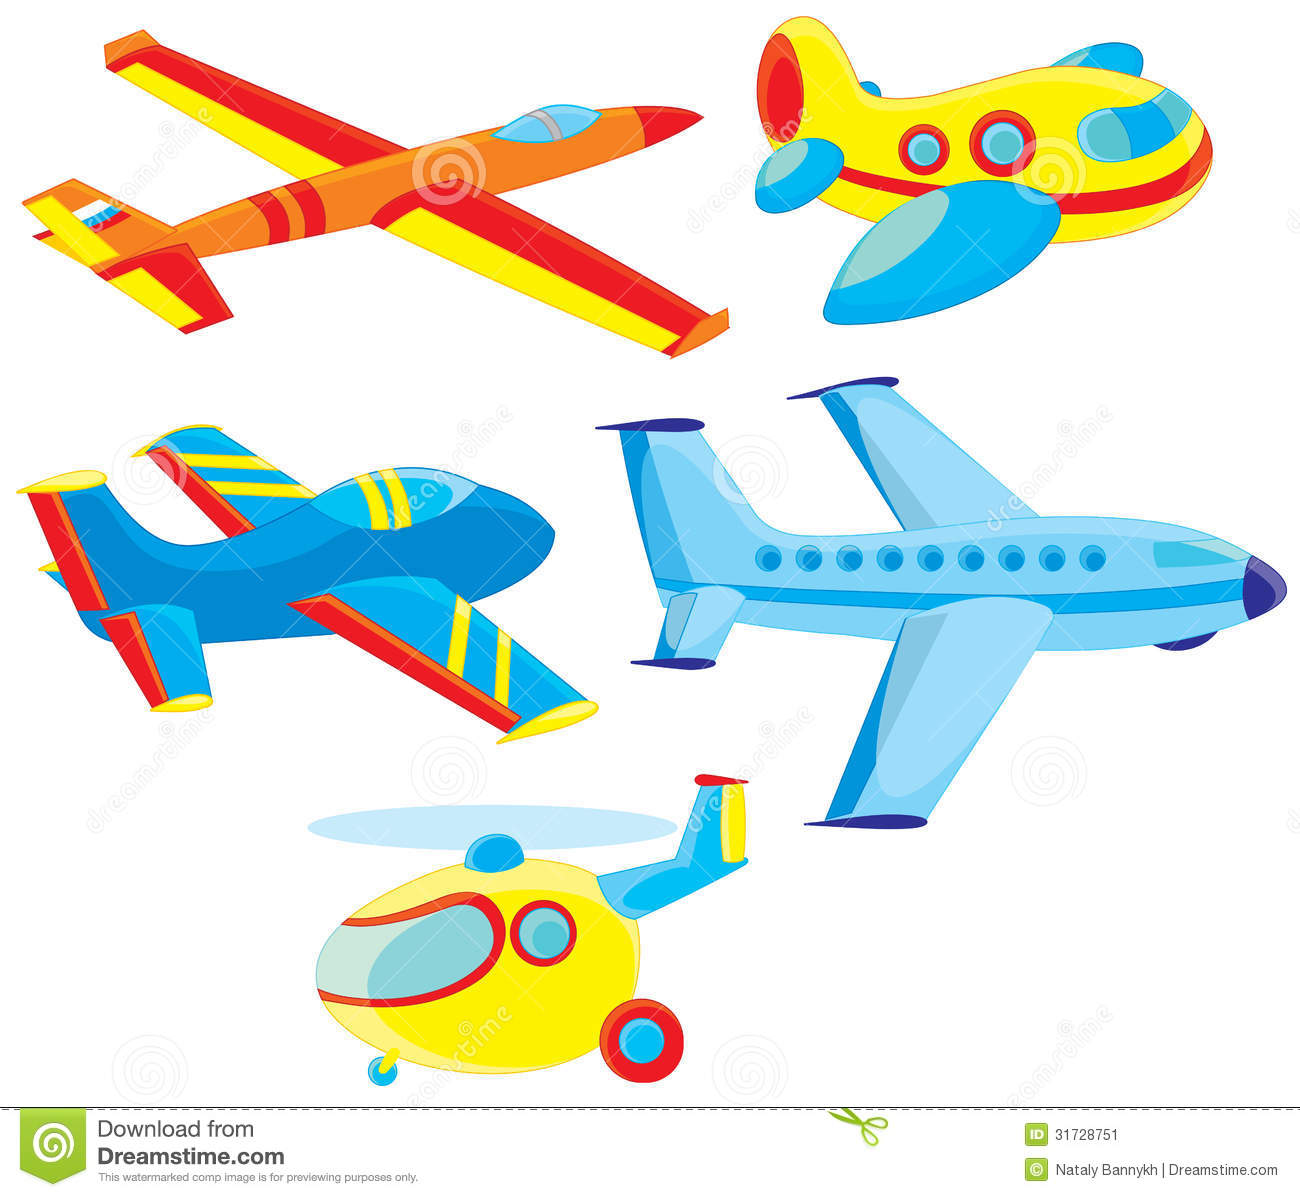 Airplane clipart girly picture royalty free download Cute Airplane Clipart | Clipart Panda - Free Clipart Images picture royalty free download